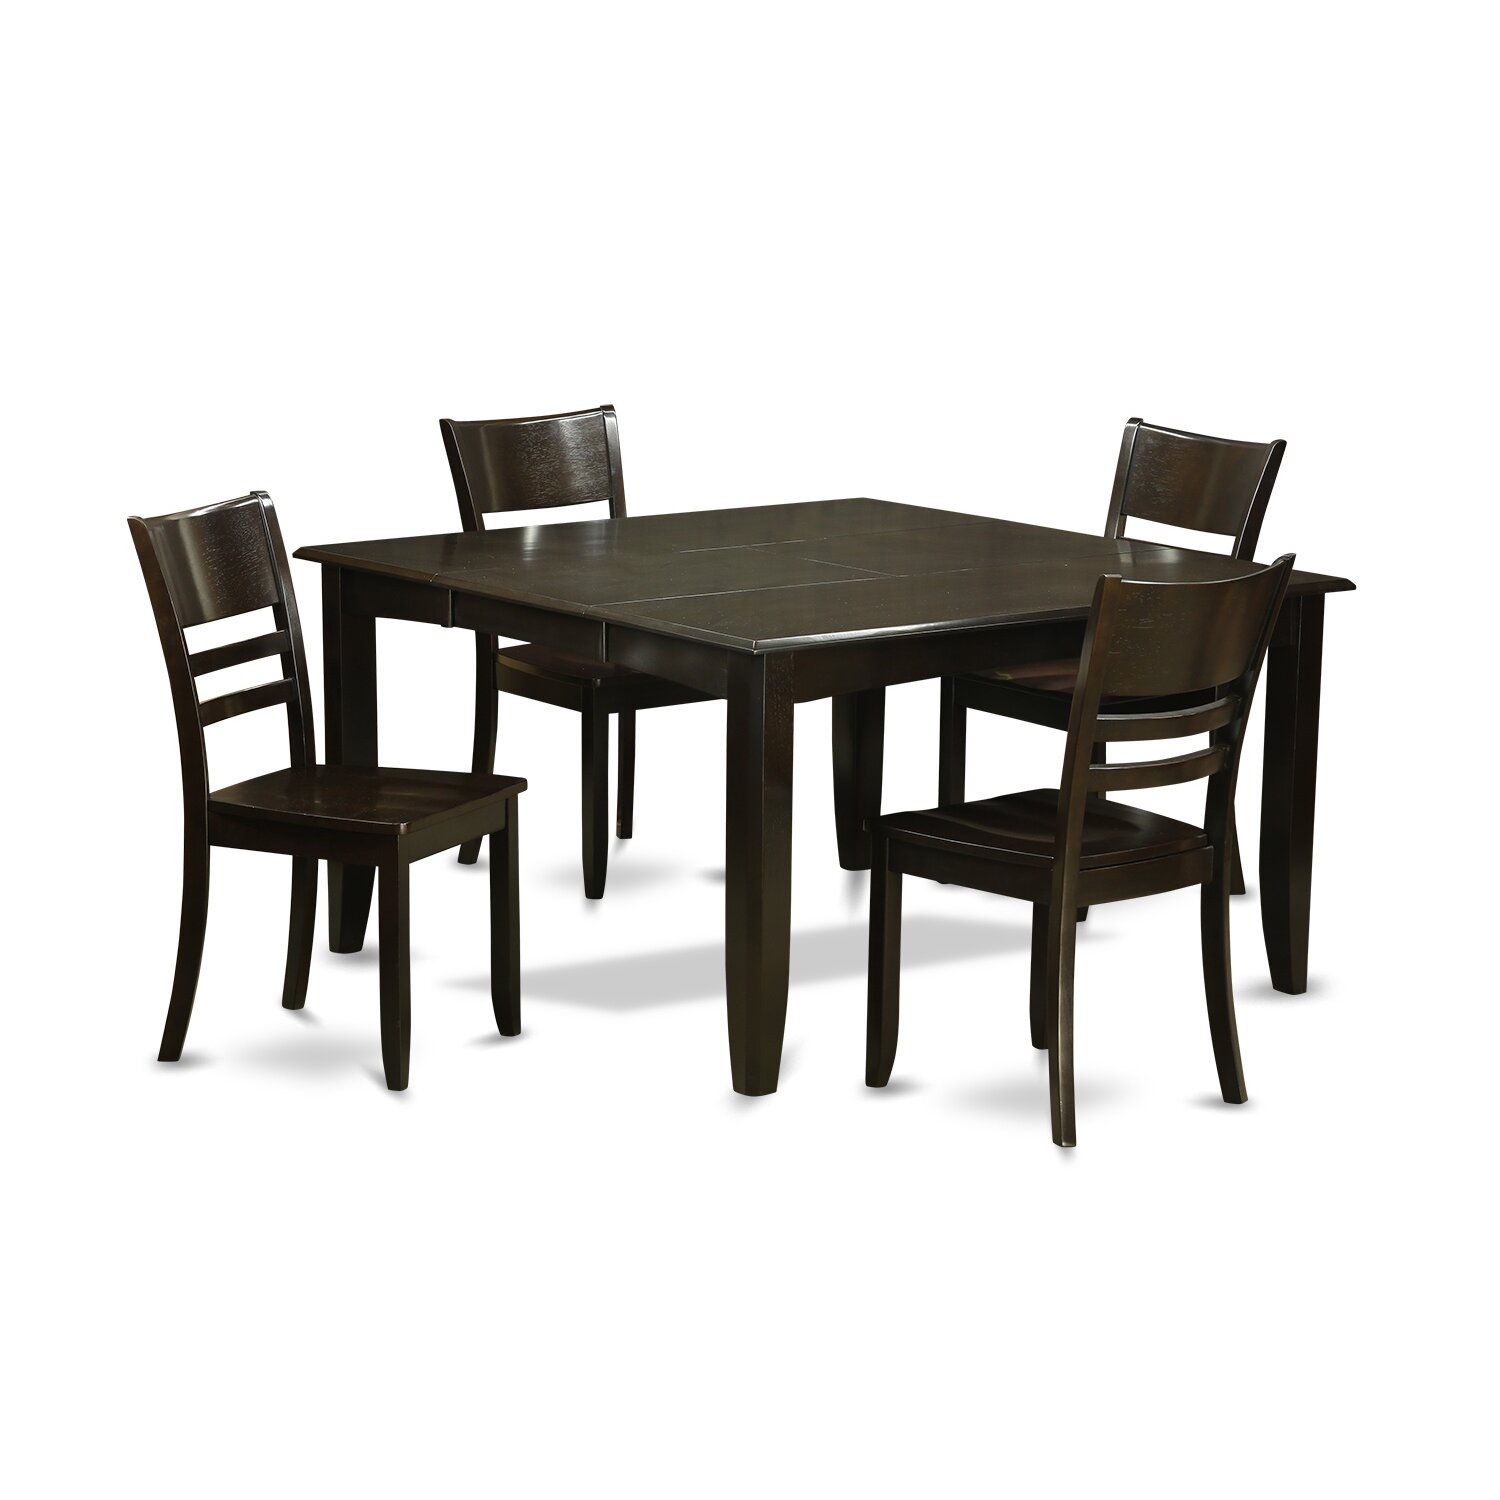 Wooden importers parfait 5 piece dining set wayfair for 5 piece dining room set with bench